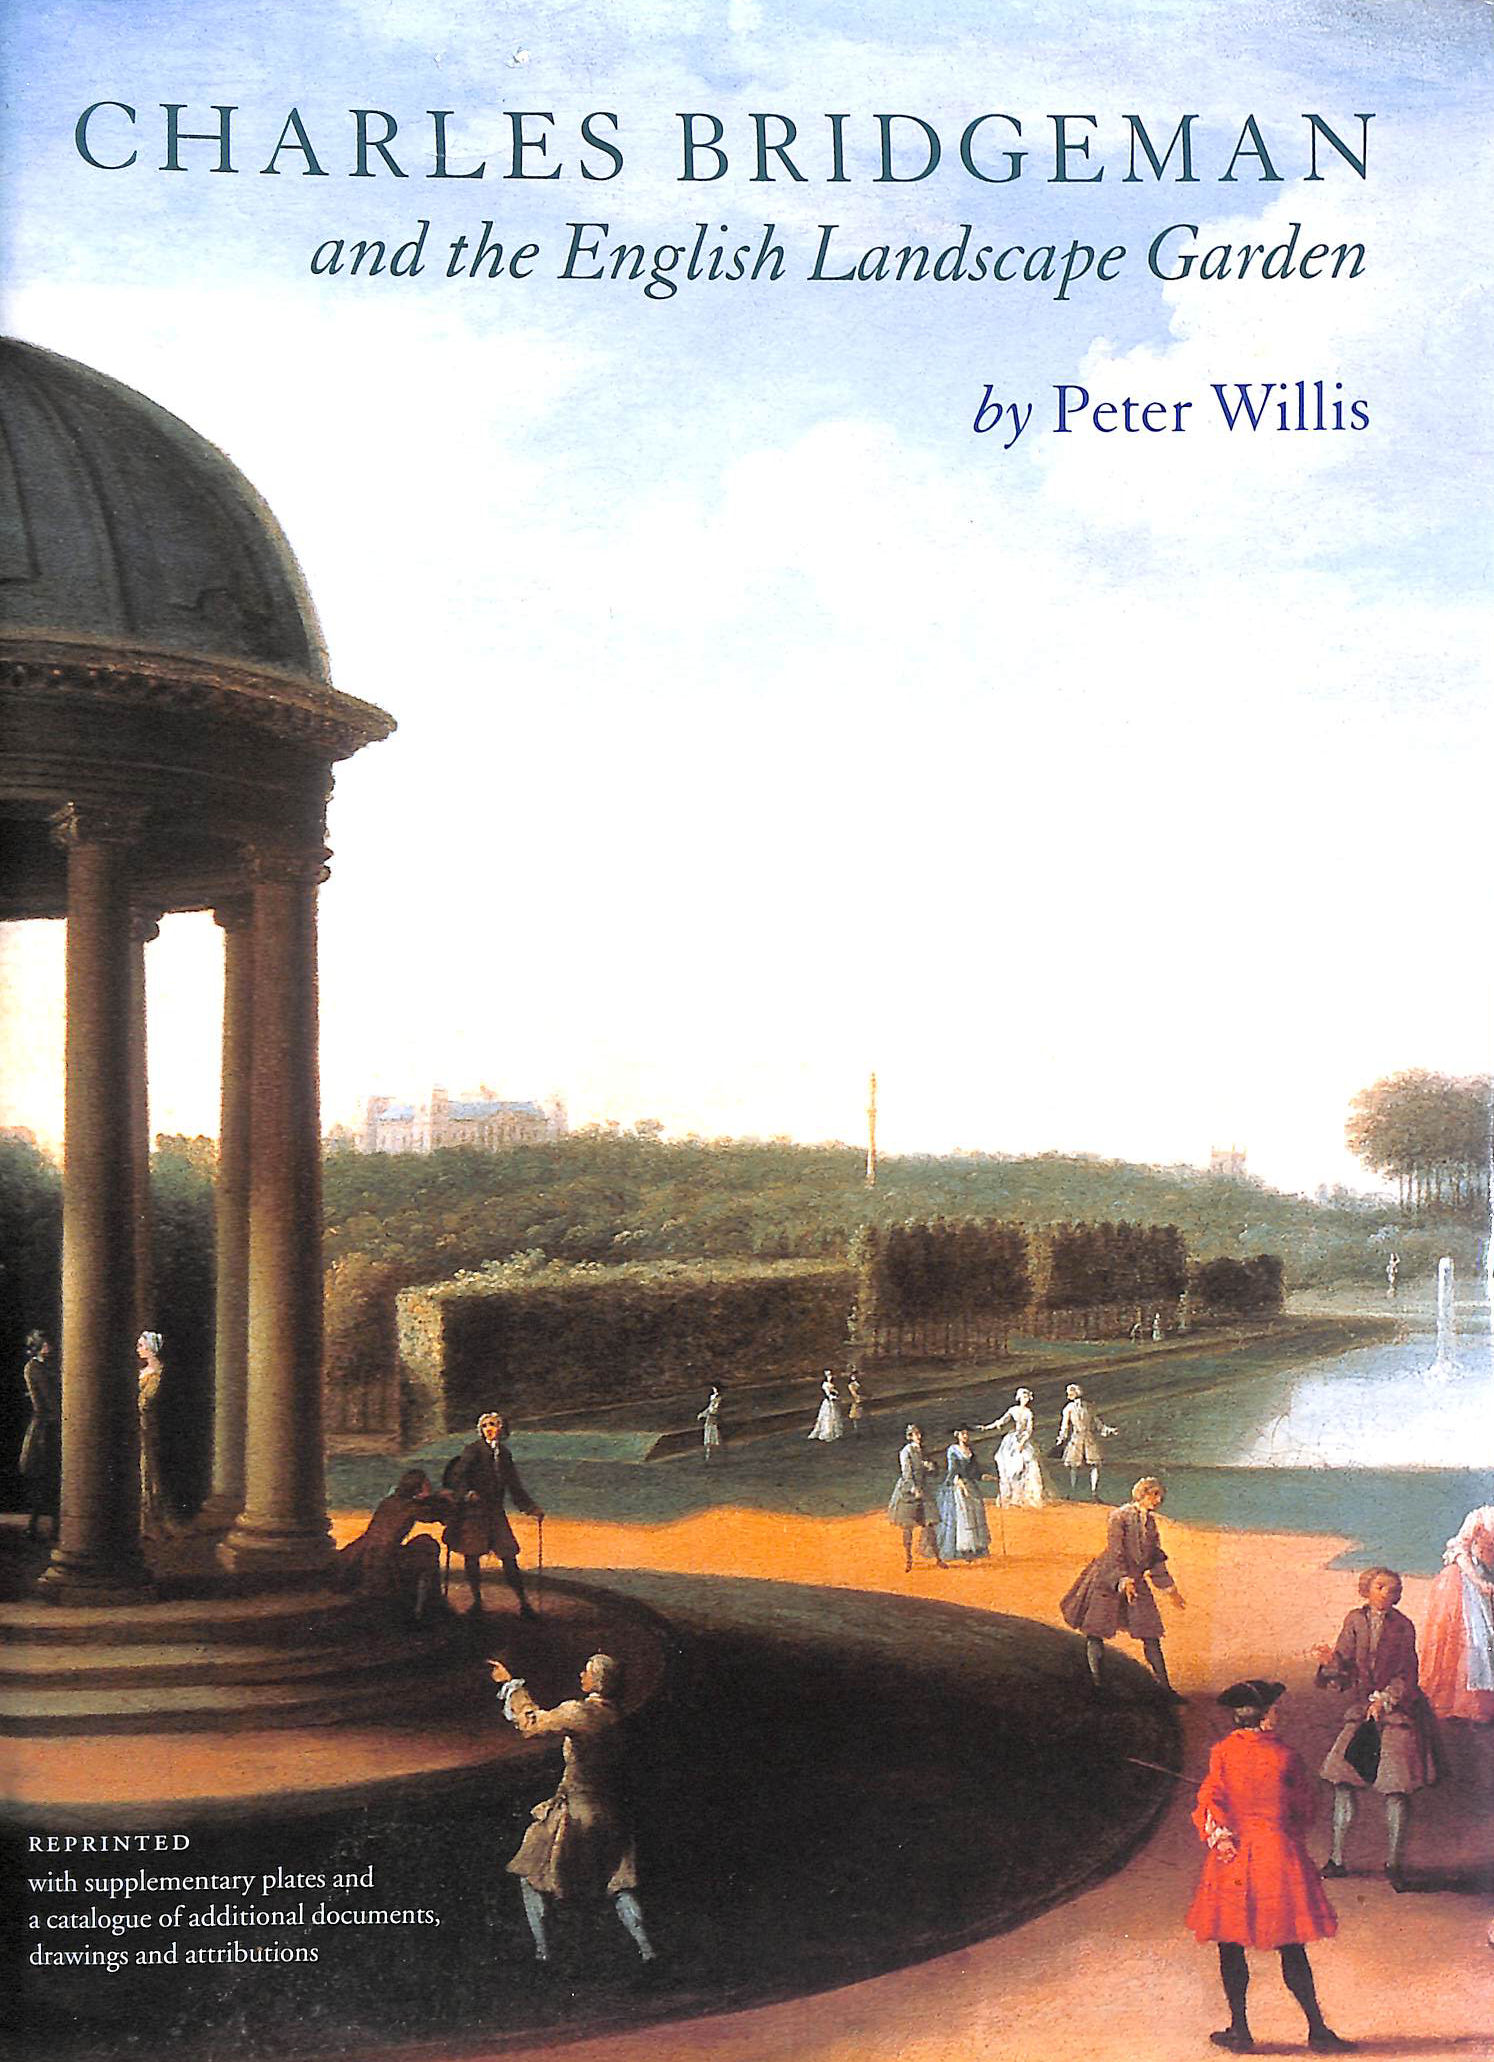 Image for Charles Bridgeman and the English Landscape Garden (Studies in architecture)